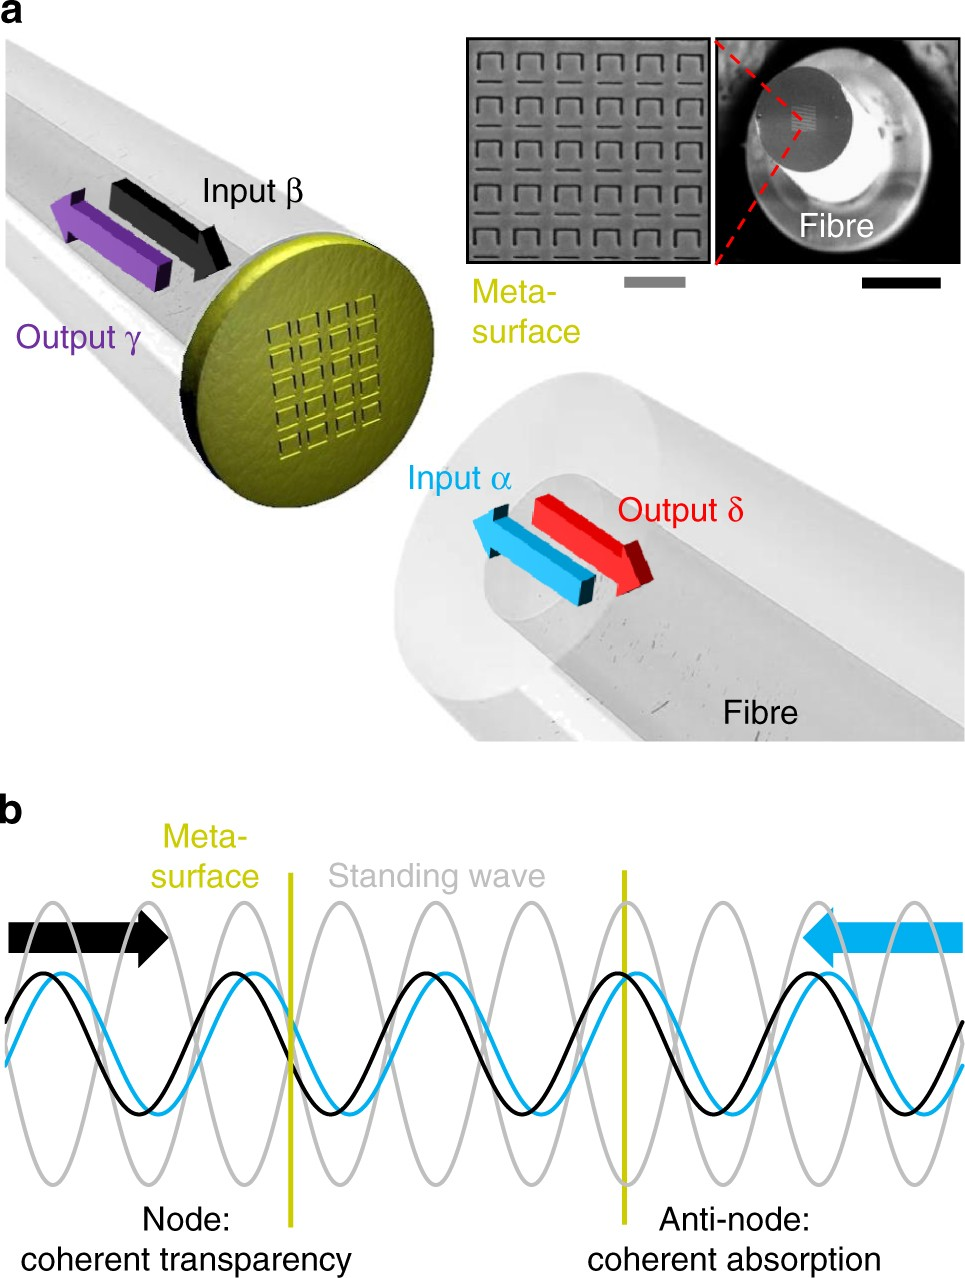 Fibre Optic Metadevice For All Optical Signal Modulation Based On 2 Way Switch Coherent Absorption Nature Communications